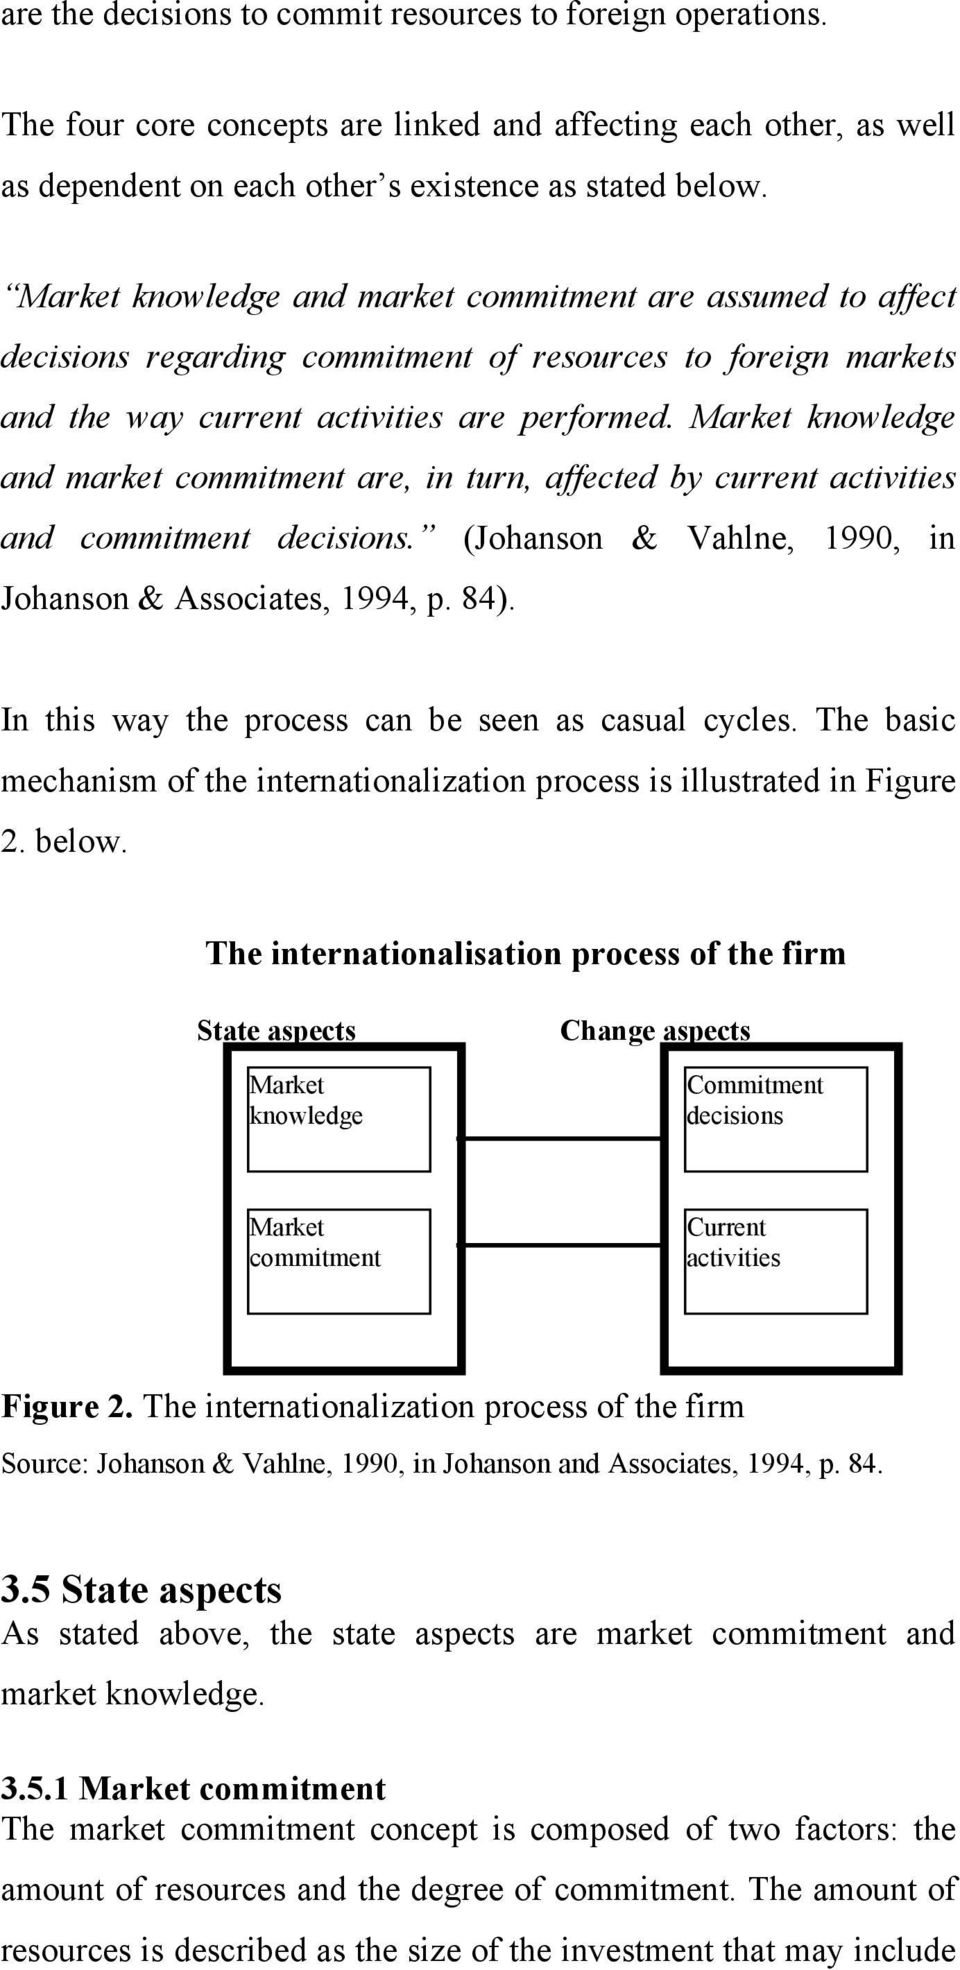 Market knowledge and market commitment are, in turn, affected by current activities and commitment decisions. (Johanson & Vahlne, 1990, in Johanson & Associates, 1994, p. 84).